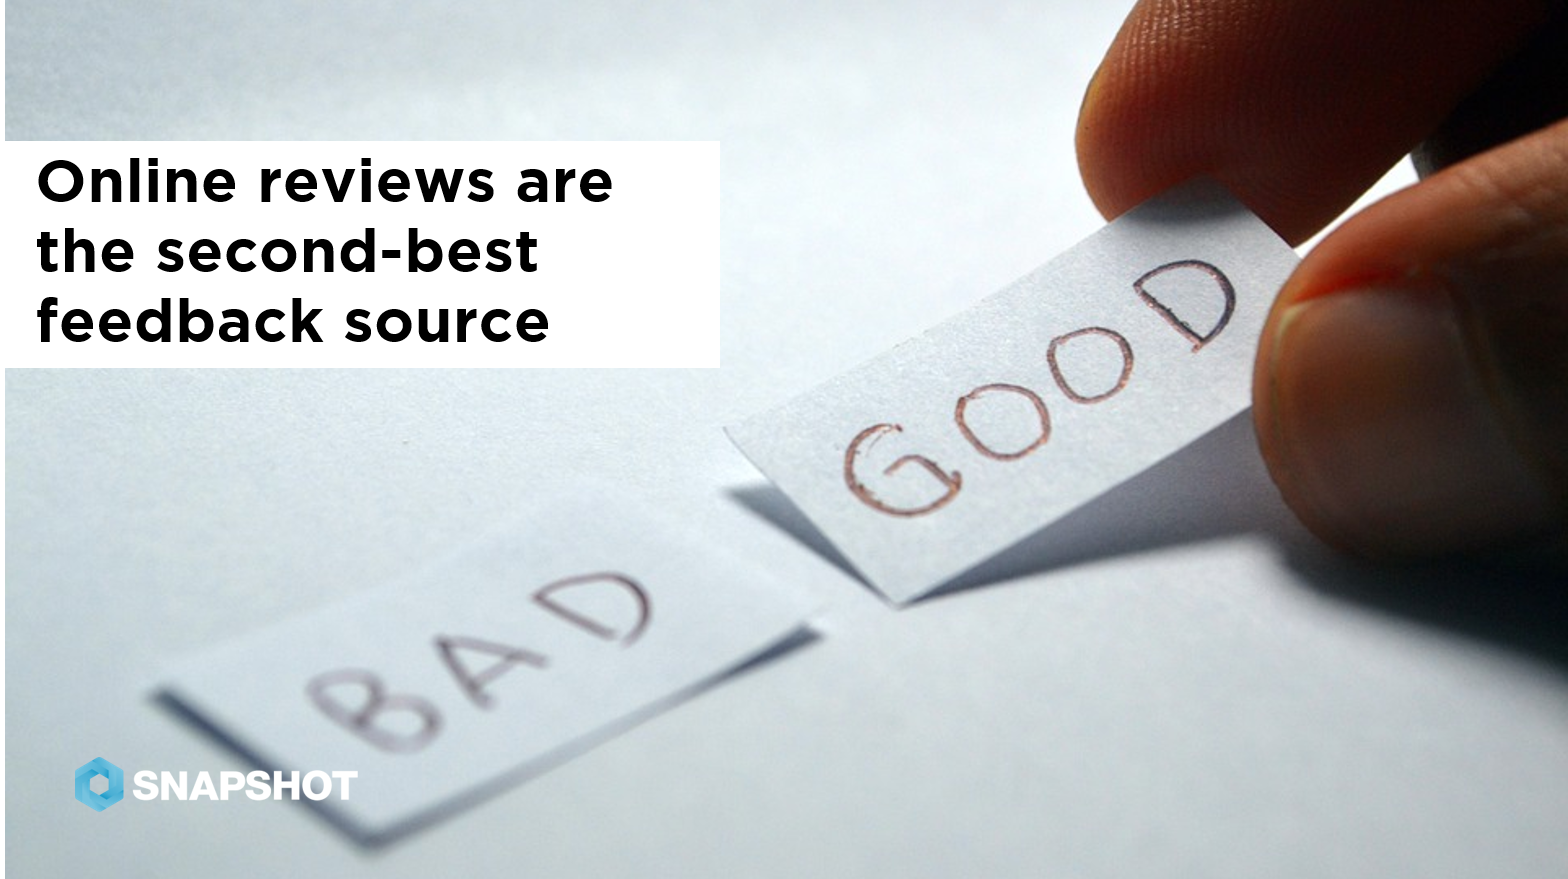 09.27.2019 Online reviews are the second best feedback source